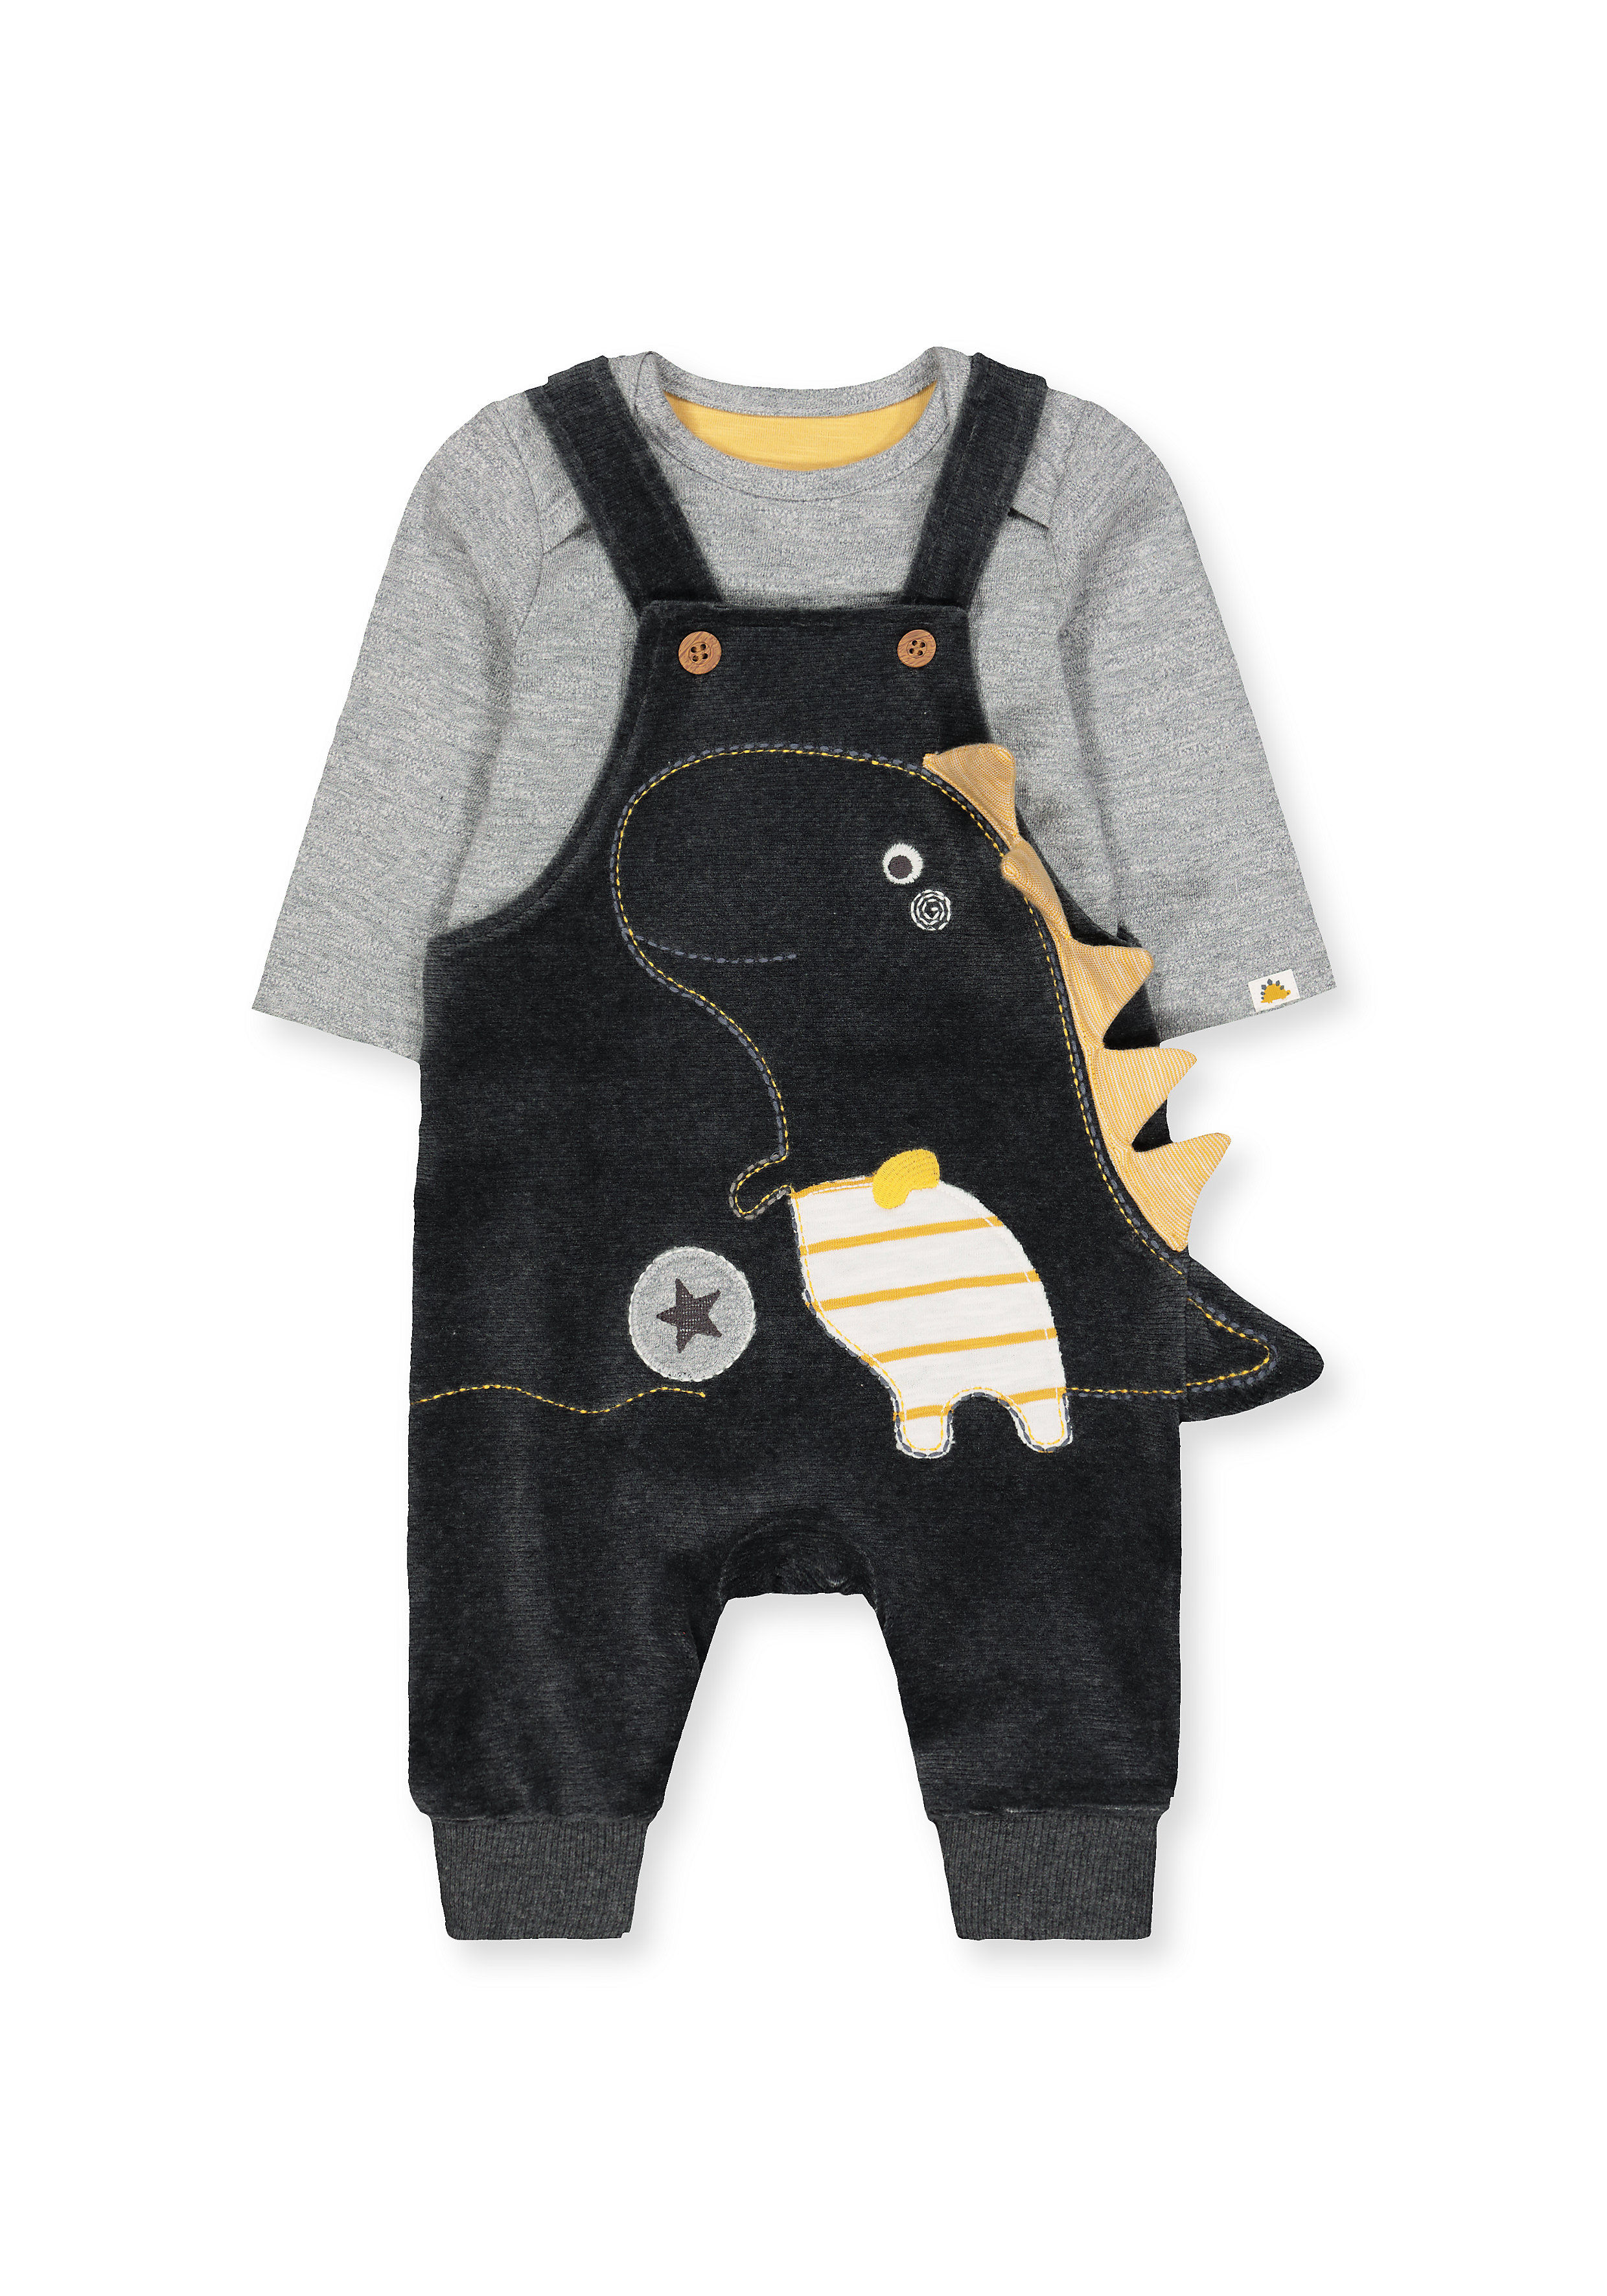 Mothercare | Boys Full Sleeves Dungaree Set 3D Dino Spikes - Black Grey